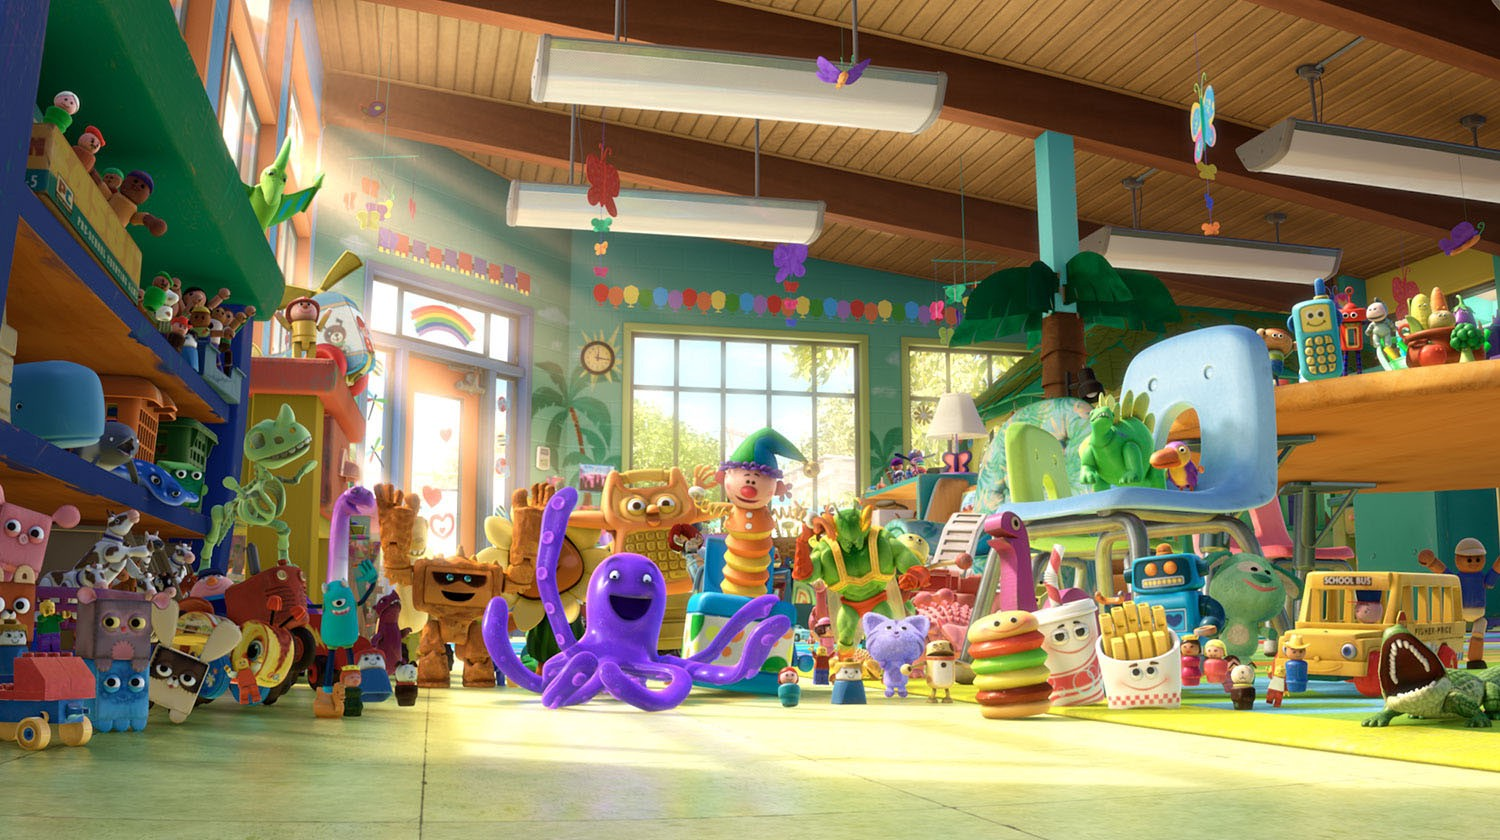 A photo from Toy Story 4